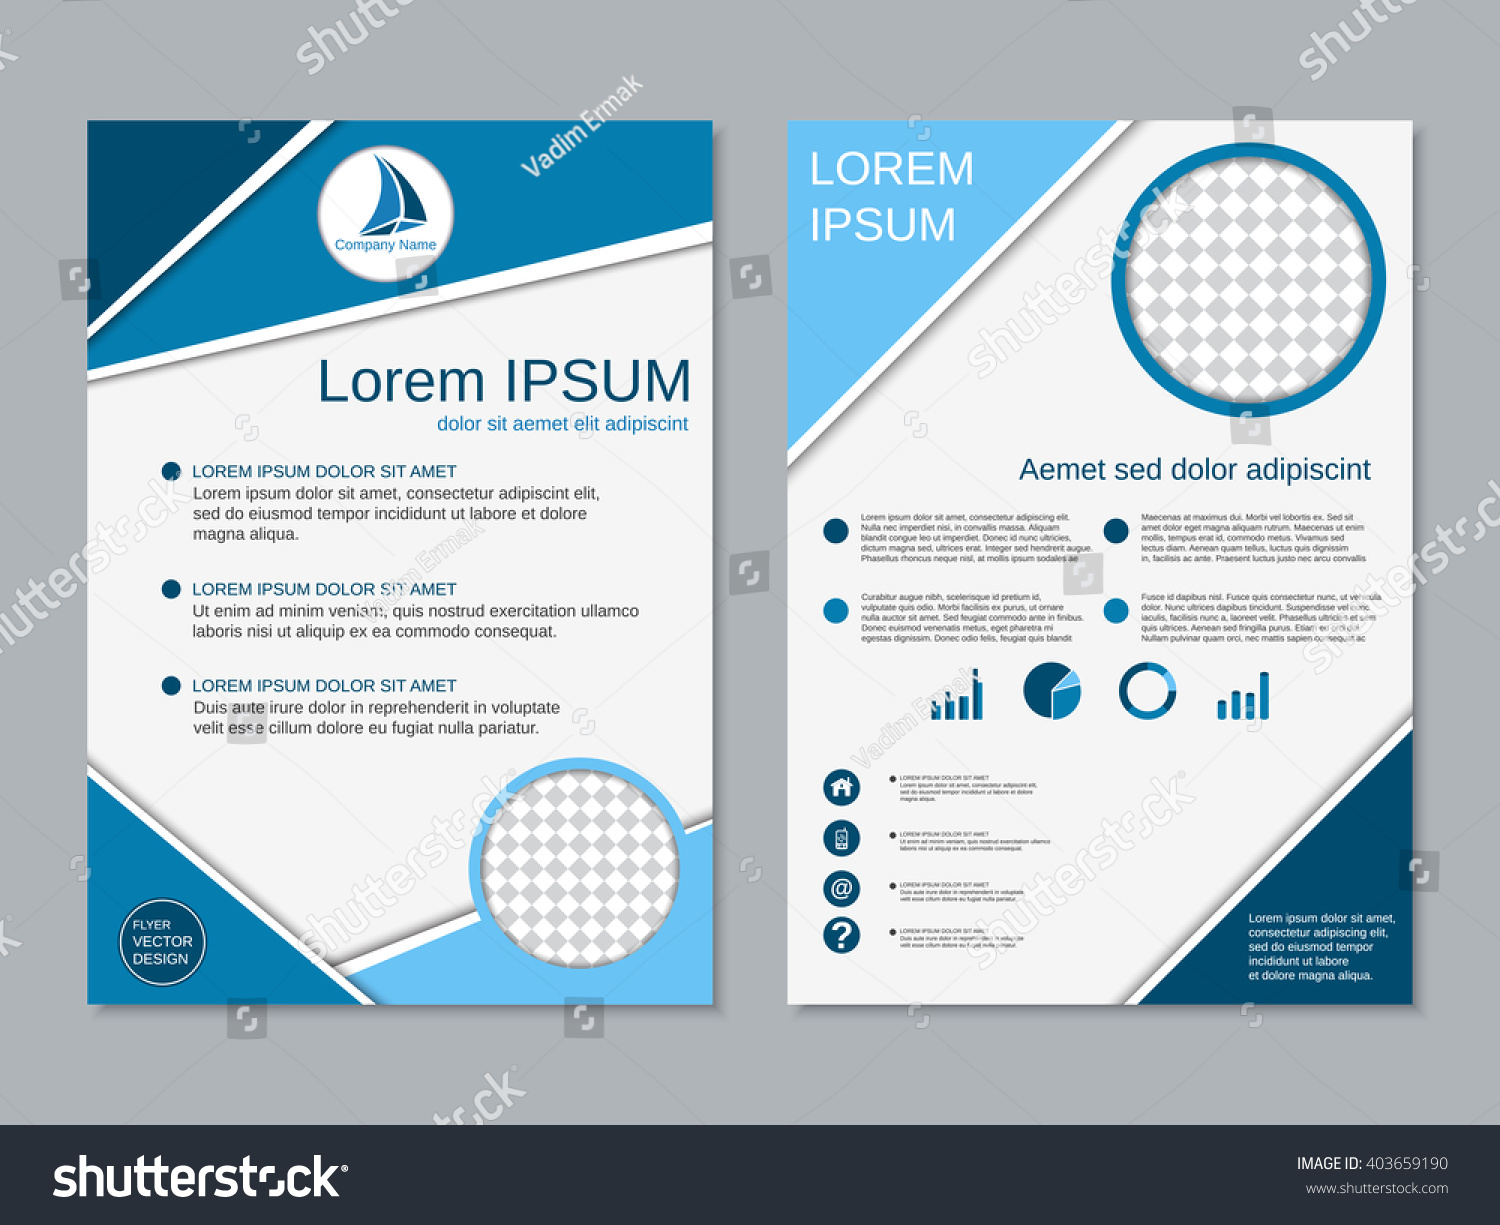 Royaltyfree Professional Twosided Booklet Template - Double sided brochure template